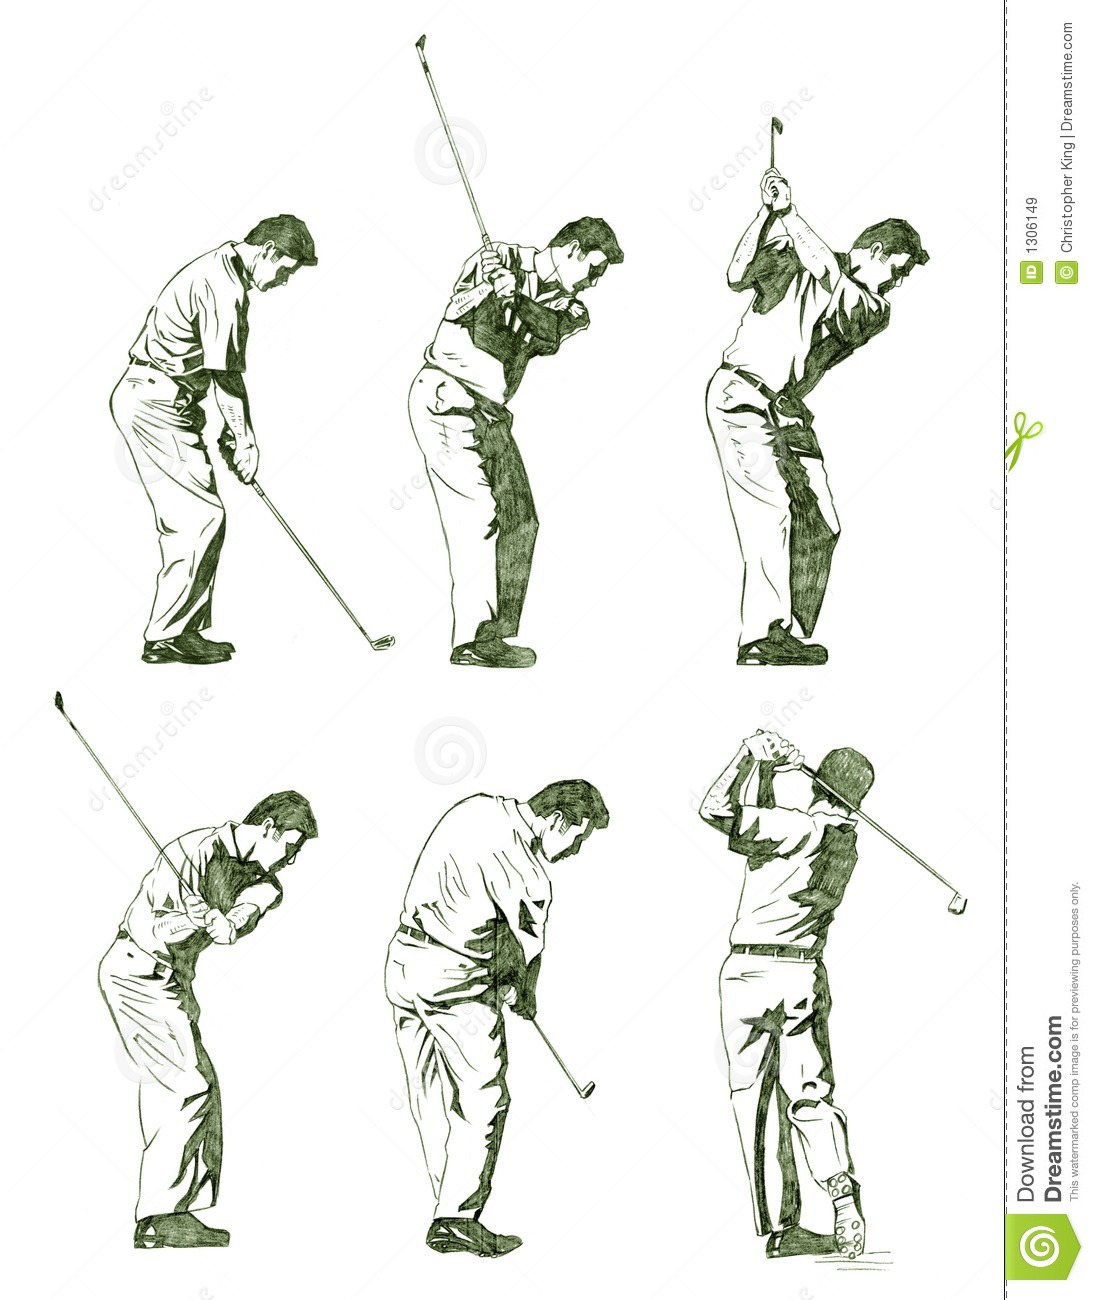 Golf Player Illustration Shown In Stages Royalty Free